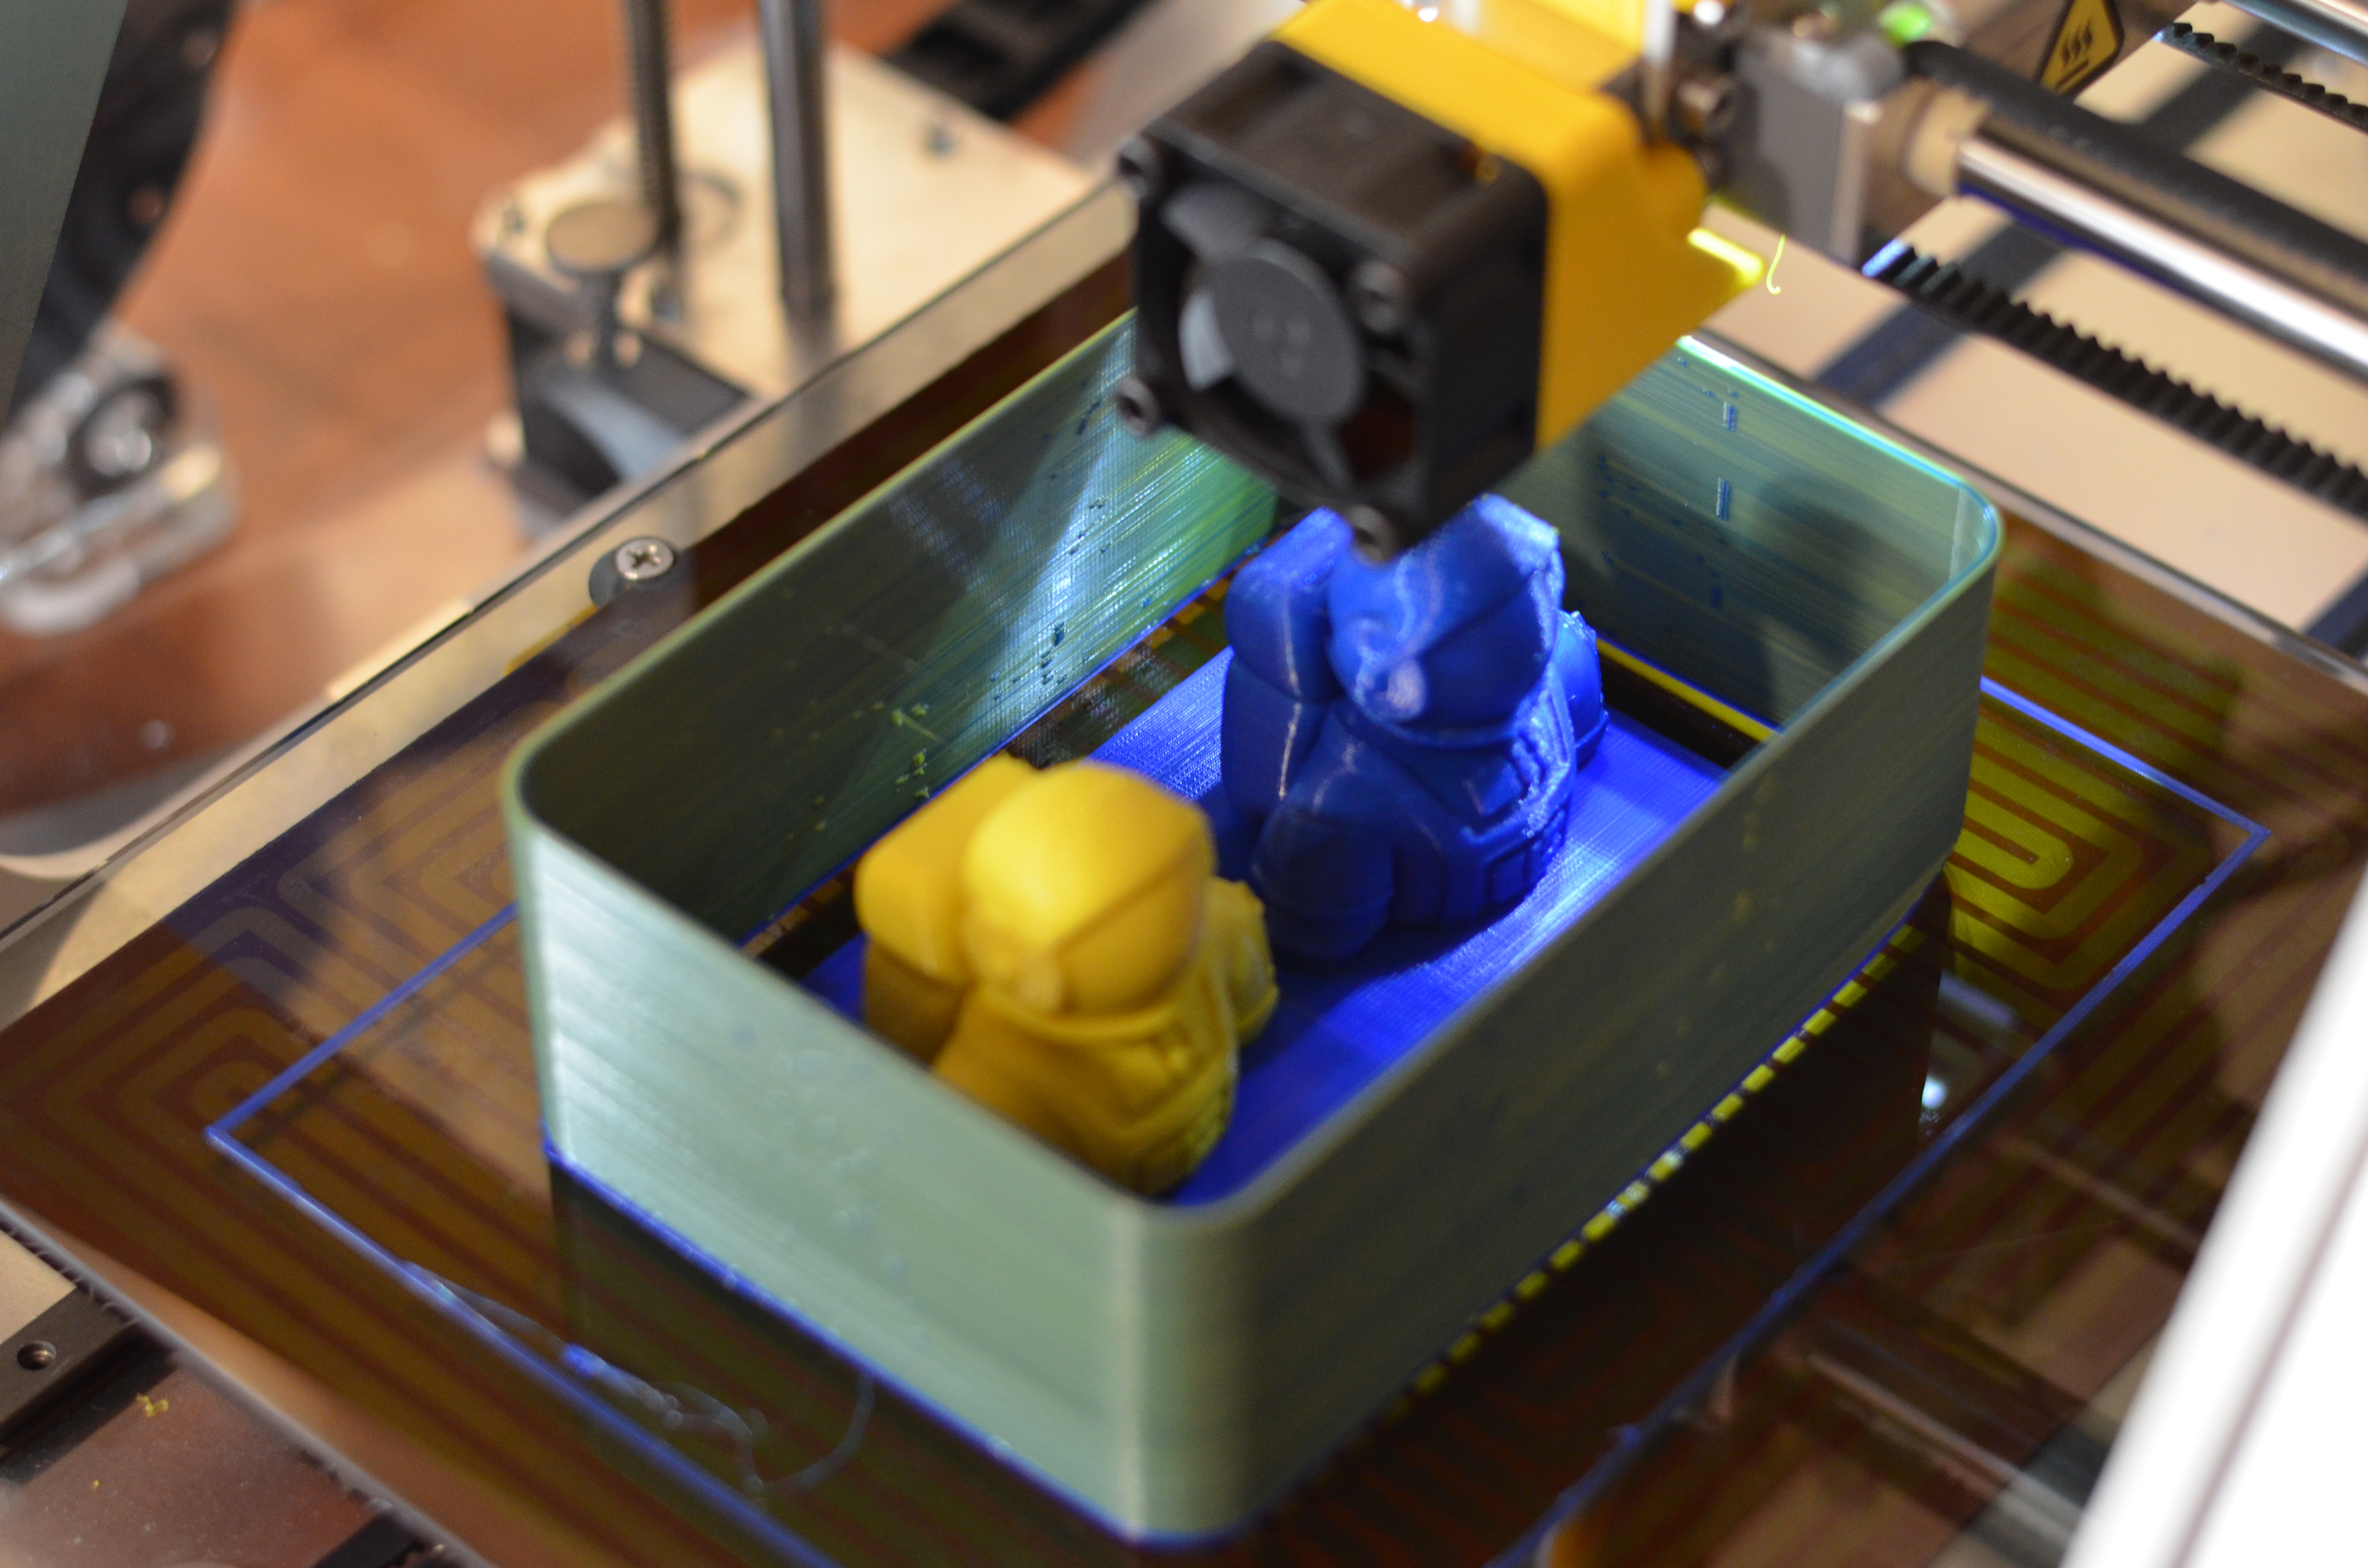 This is a preview of the Dual Pro's 3D printing capabilities. It's a pity I can't finish that portion of the review for now.